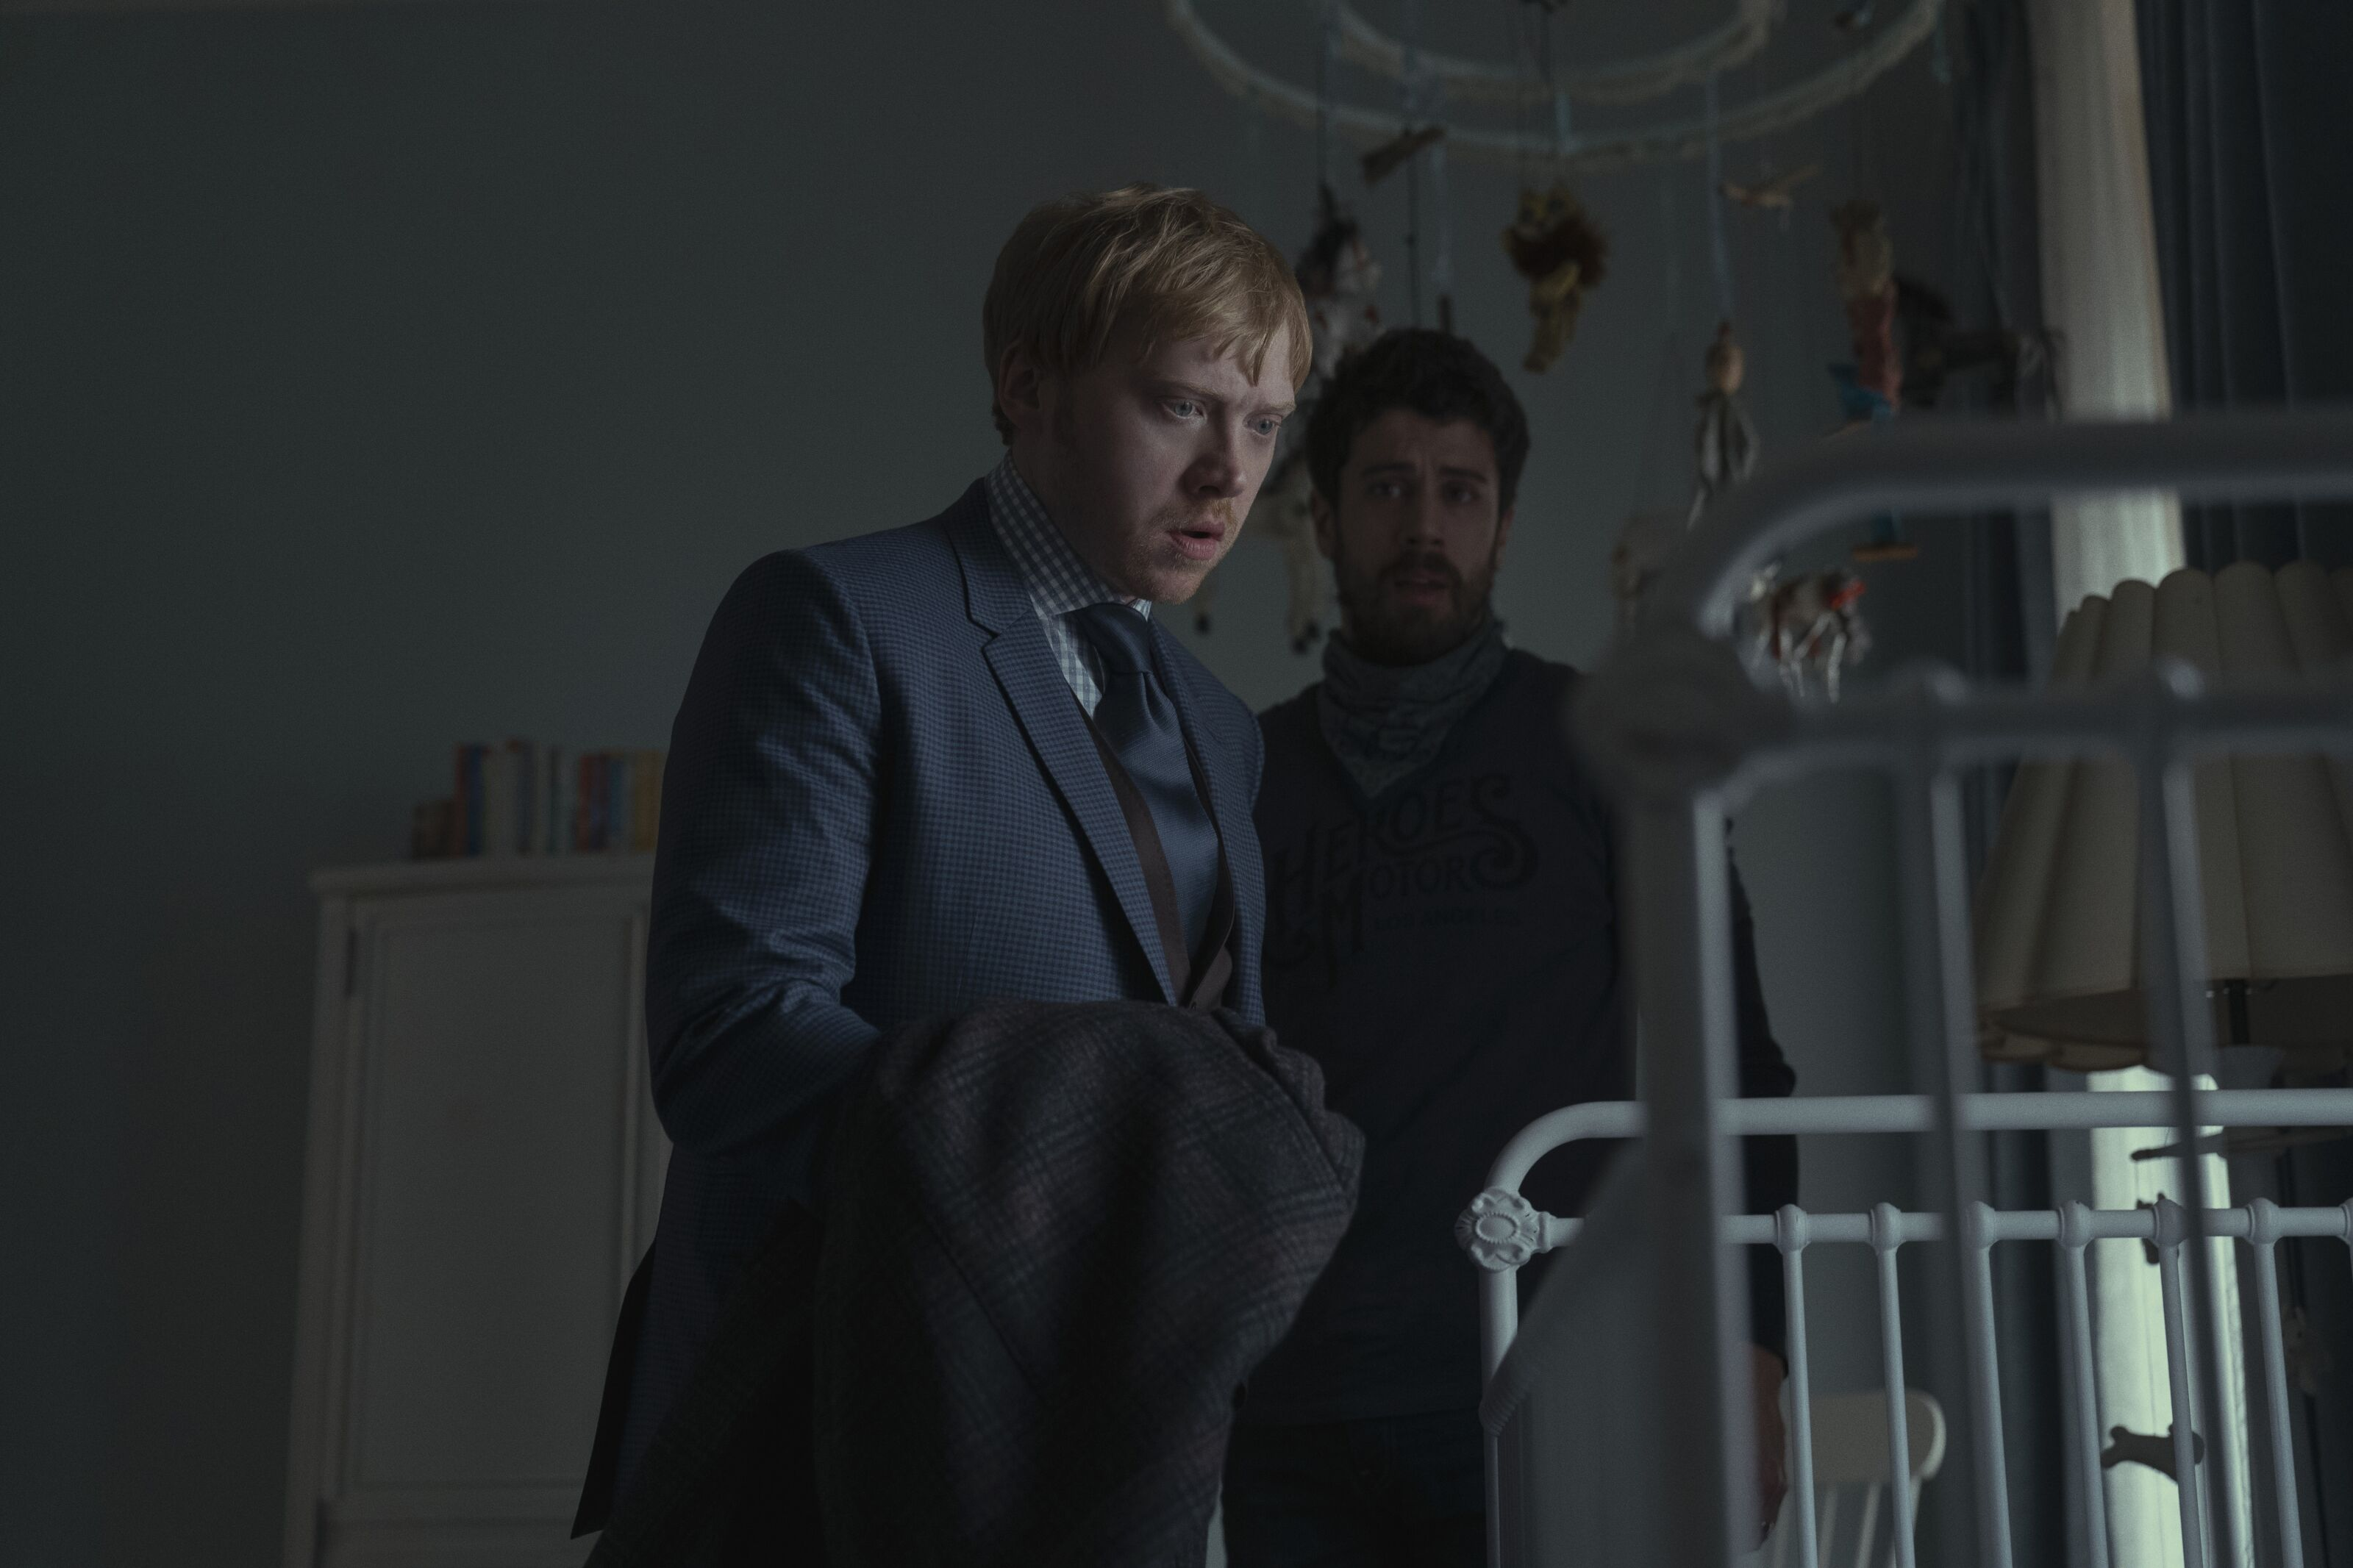 Servant on Apple TV: Rupert Grint is a stand-out in psychological thriller